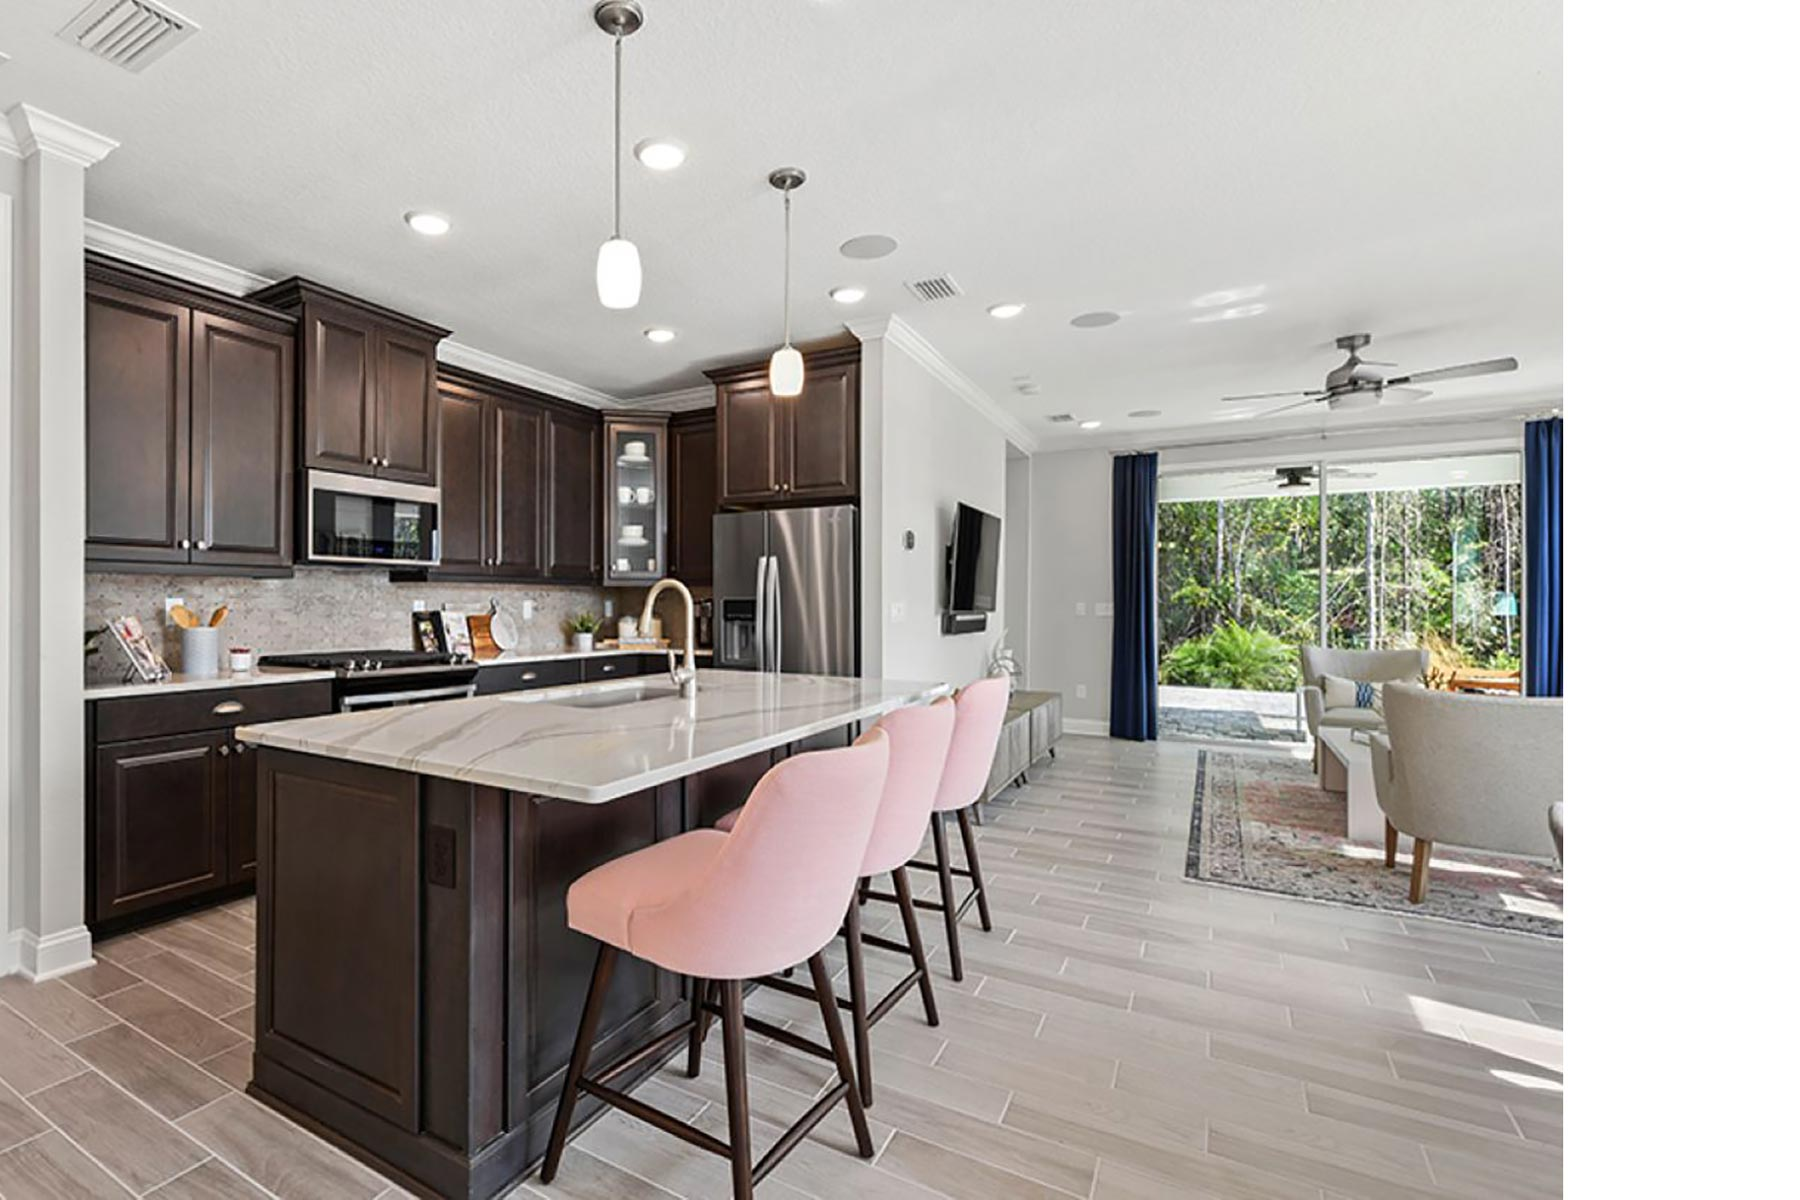 River Plan Kitchen at RiverTown - WaterSong in St. Johns Florida by Mattamy Homes